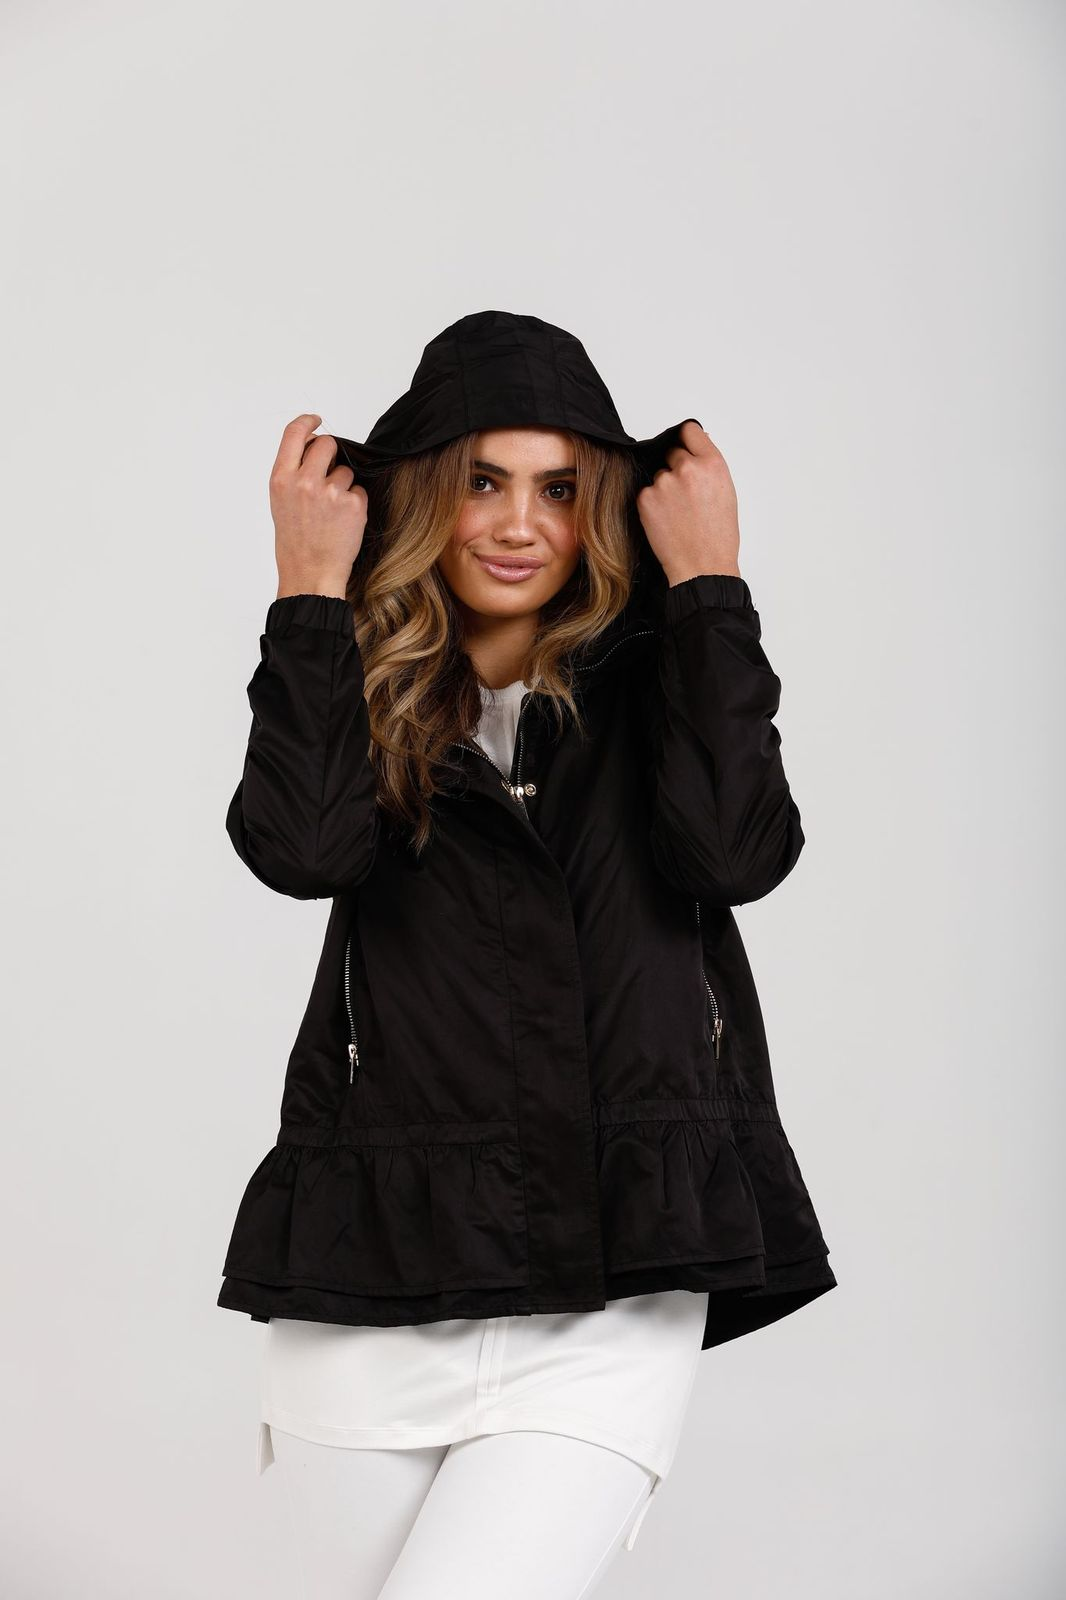 Black Danbury Jacket - by Brave and True currently available at Rawspice Boutique.